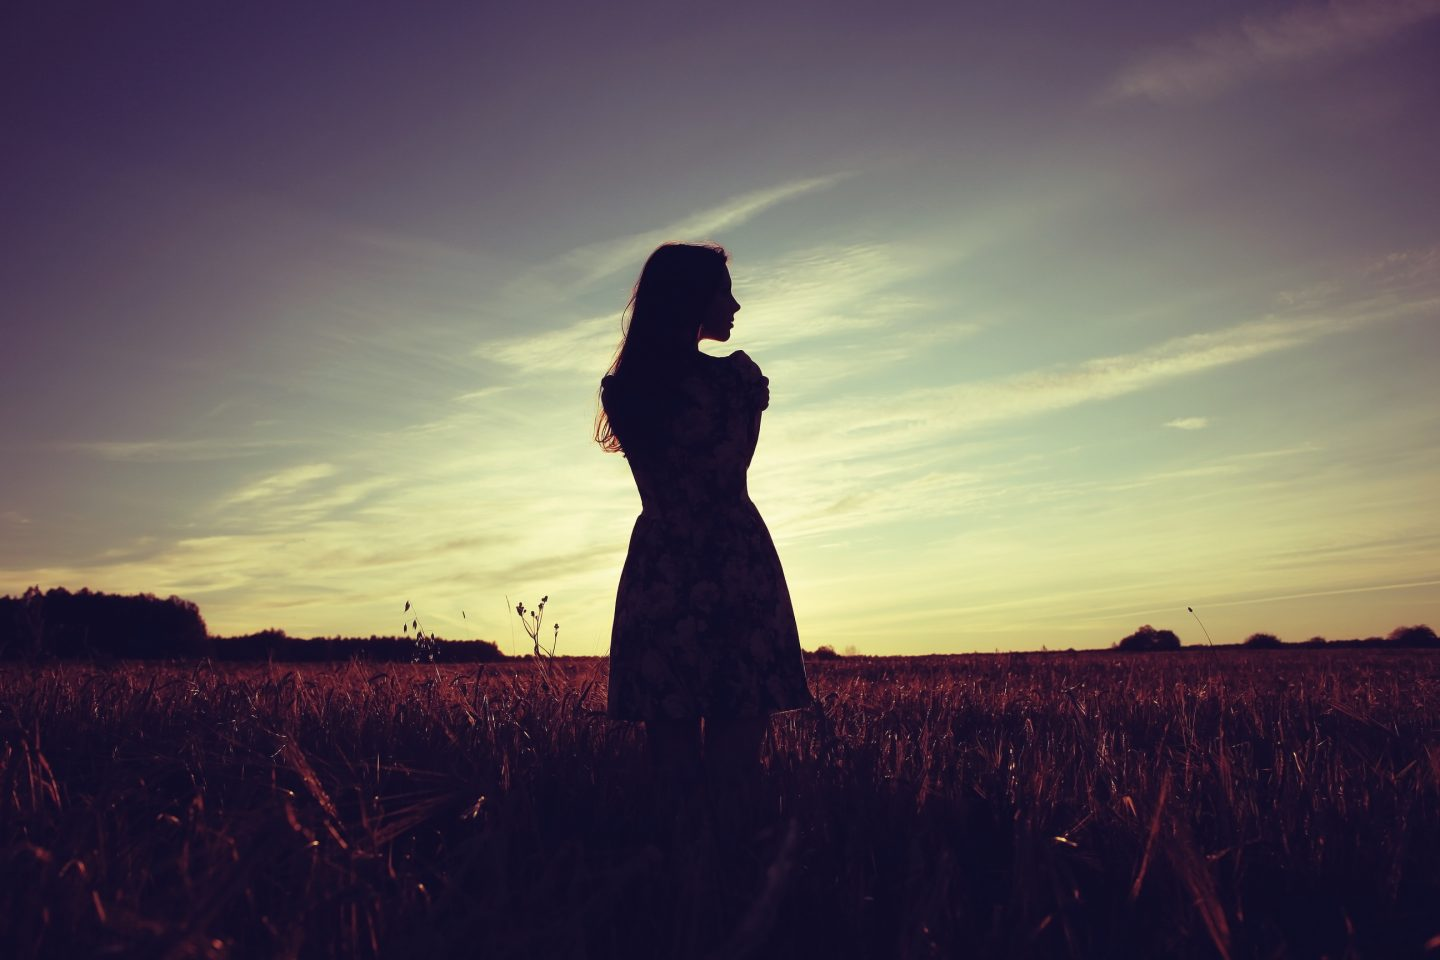 A woman standing in a field at sunset with her back to us looking over to the right